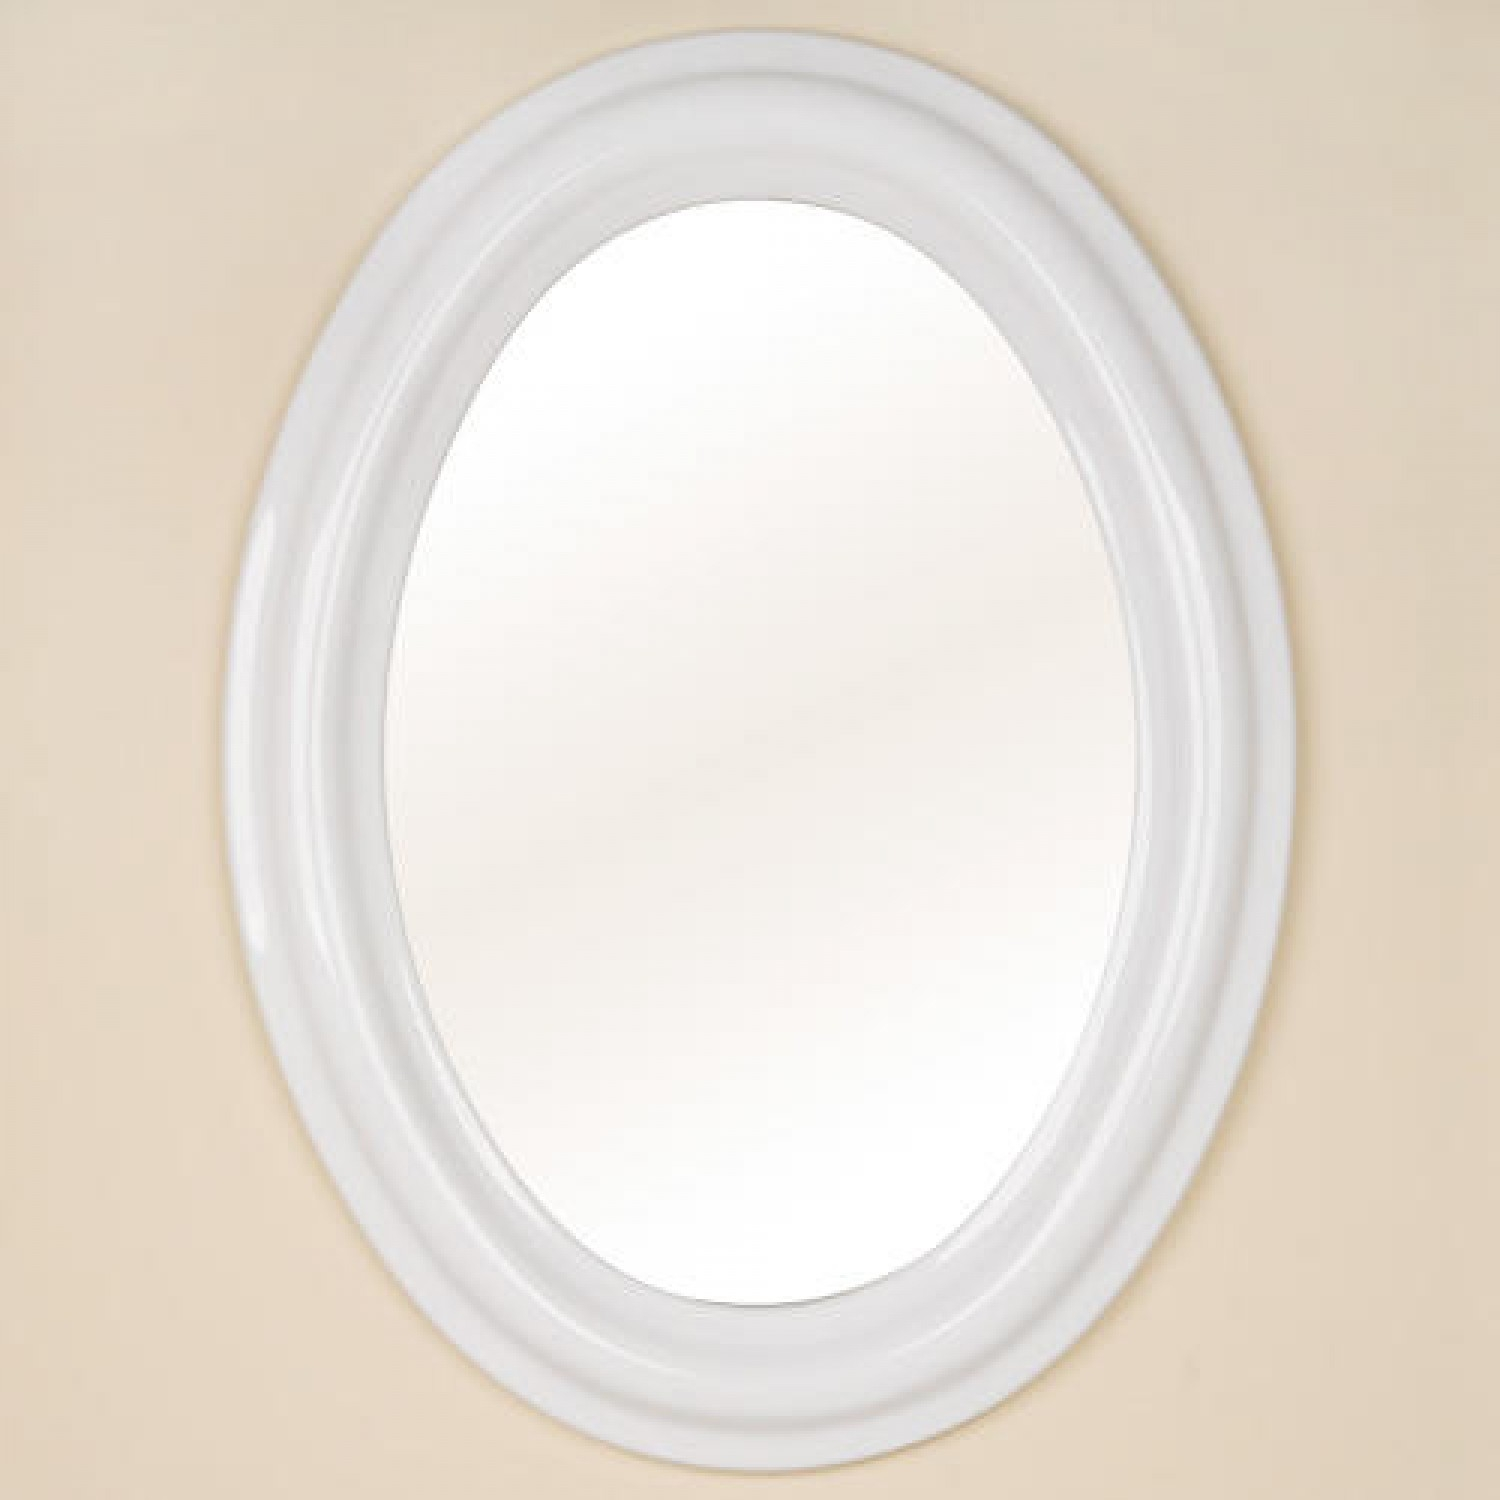 Oval Bathroom Mirror With Frameoval ceramic mirror white bathroom